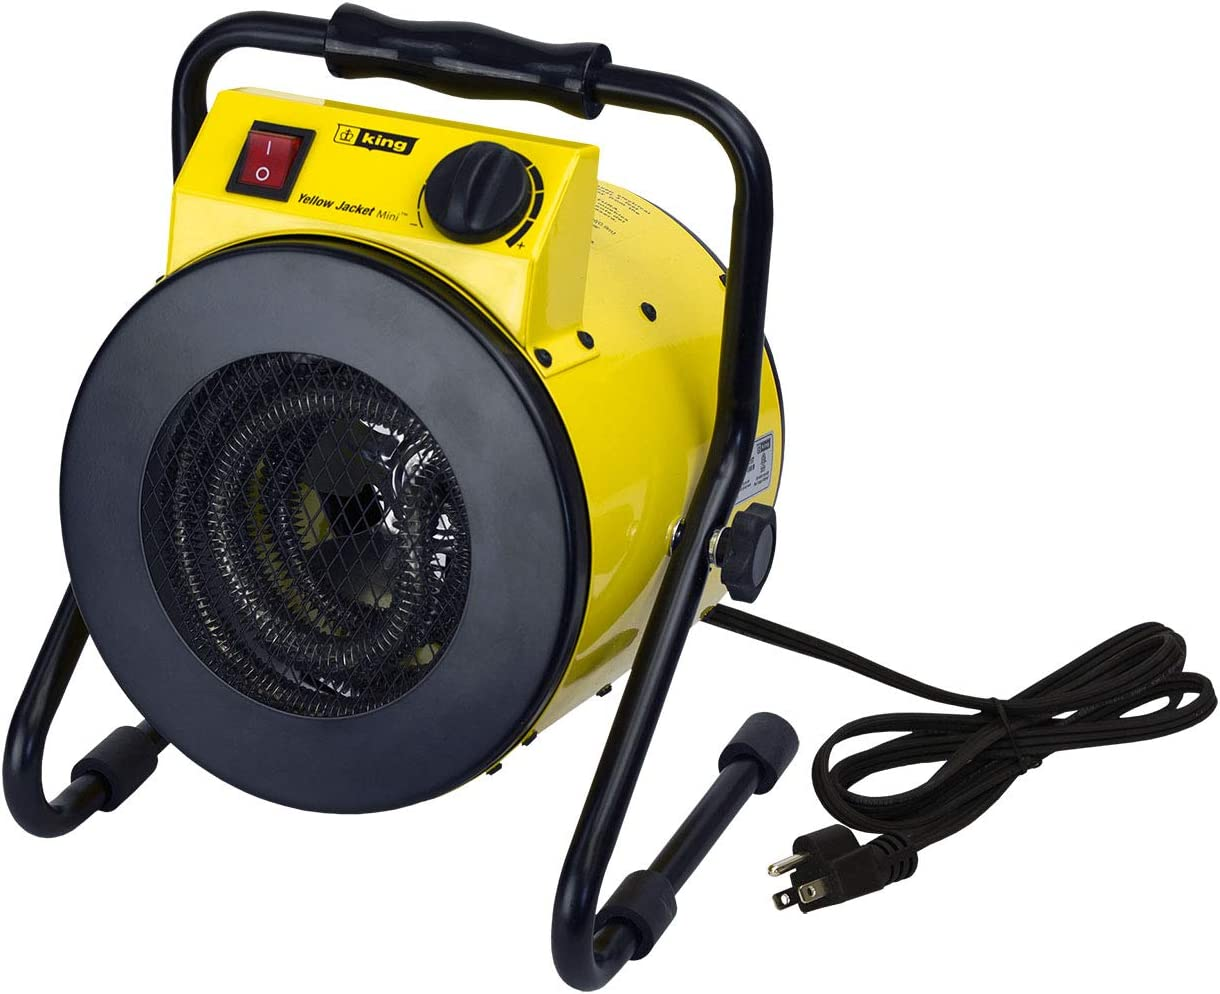 KING Portable Shop Heater w/Thermostat